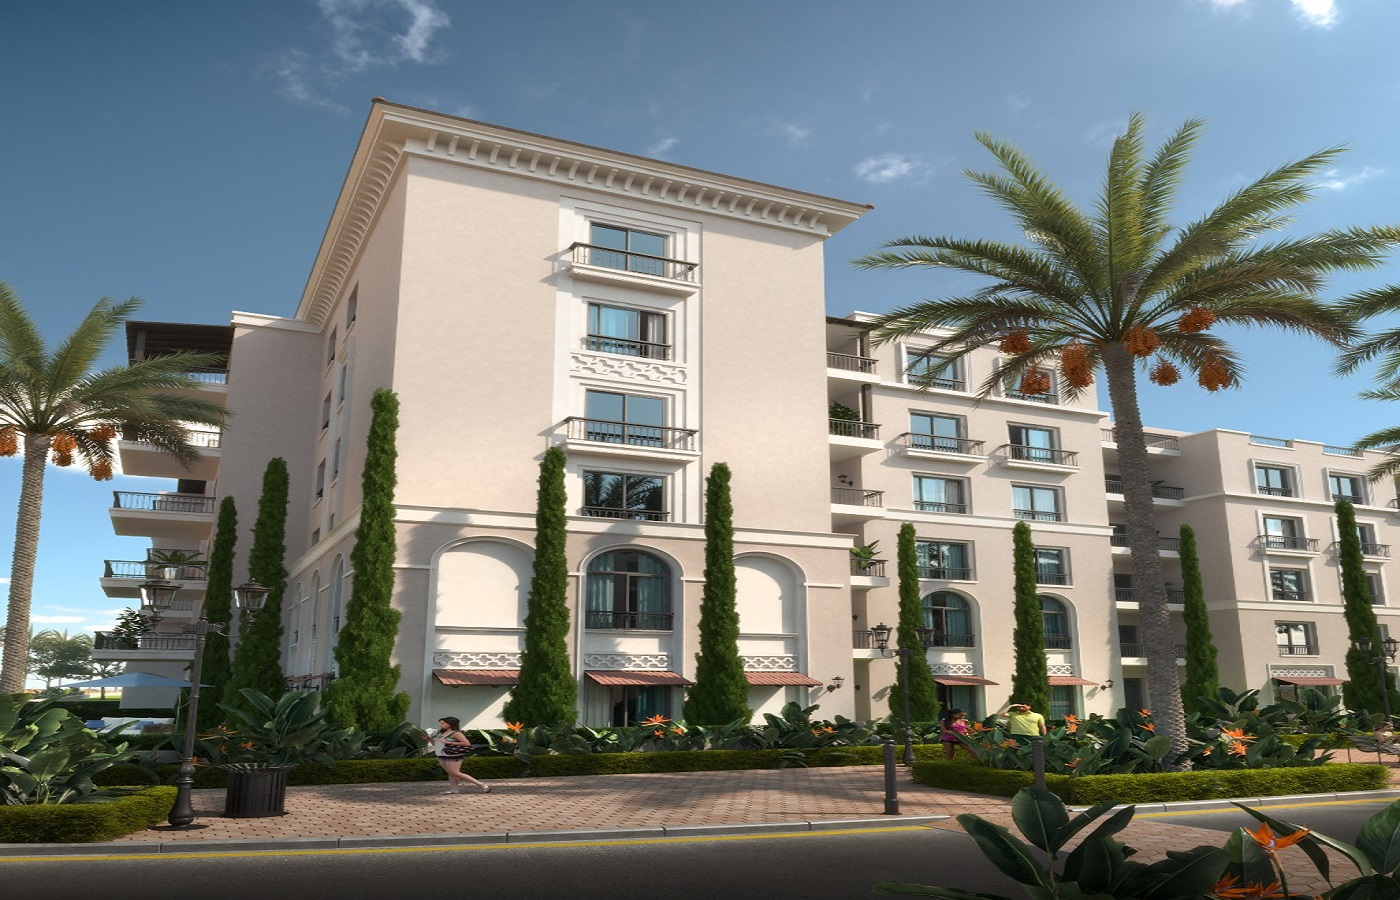 Village West Sheikh Zayed Compounds Dorra Developments - Fully Finished Apartments - 8 Gates Real Estate Egypt